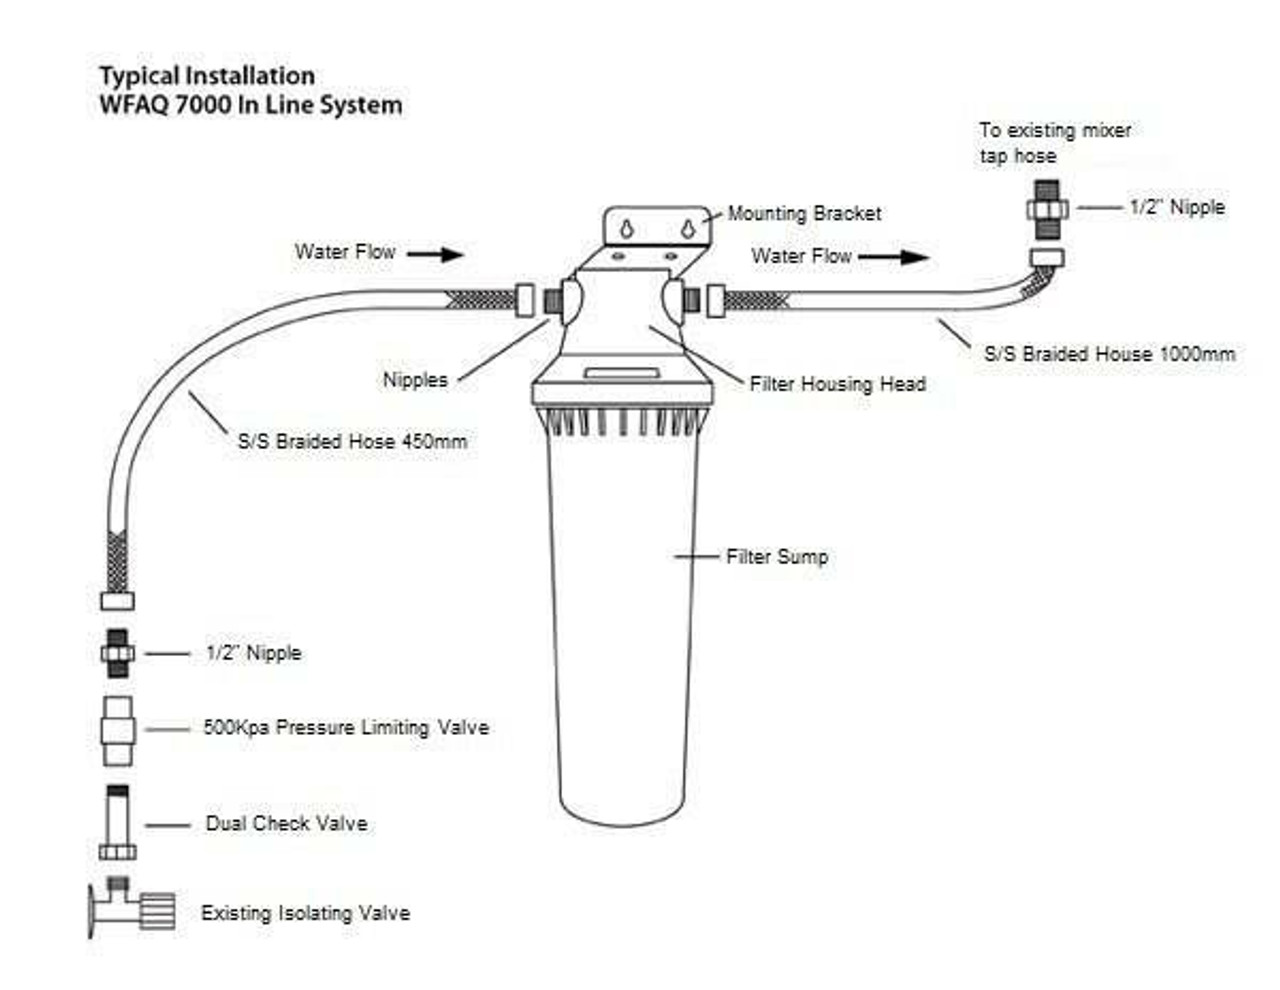 Buy Aquila In Line Twist Lock Filter System Sku Wfaq7000 At Our Best Price Of Aud 395 Sinkwarehouse Com Au